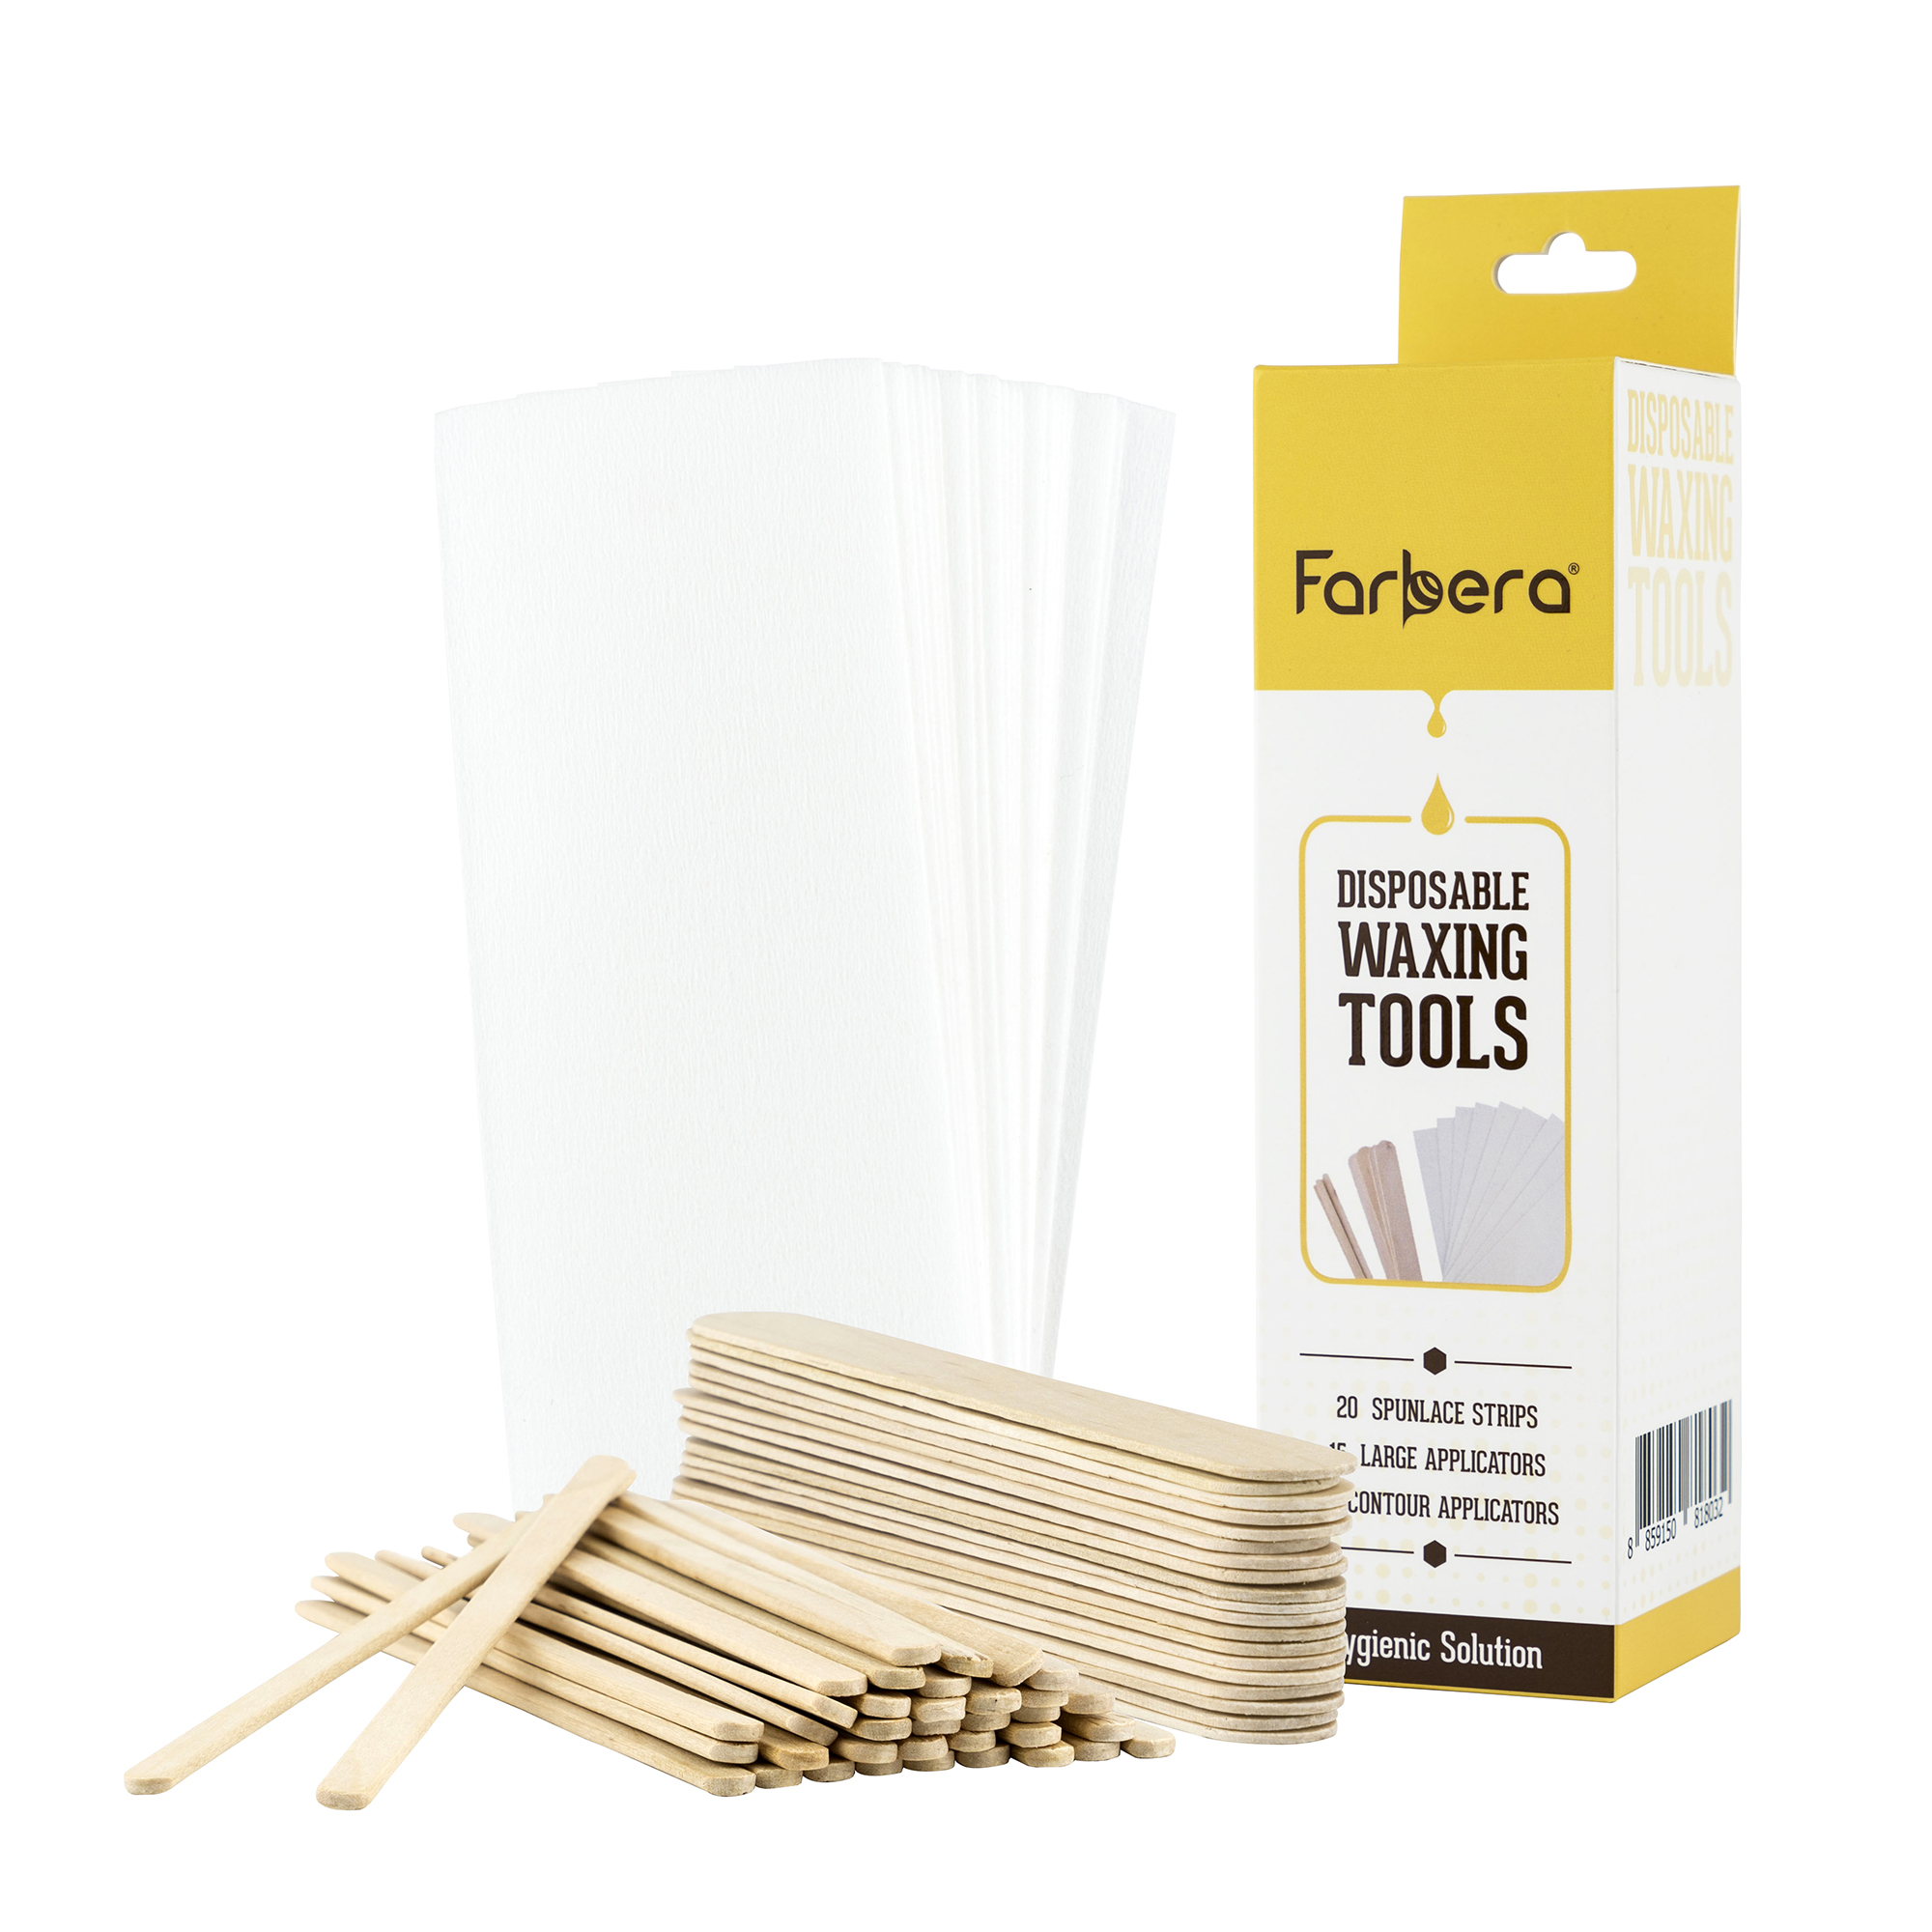 Farbera Disposable Waxing Tools